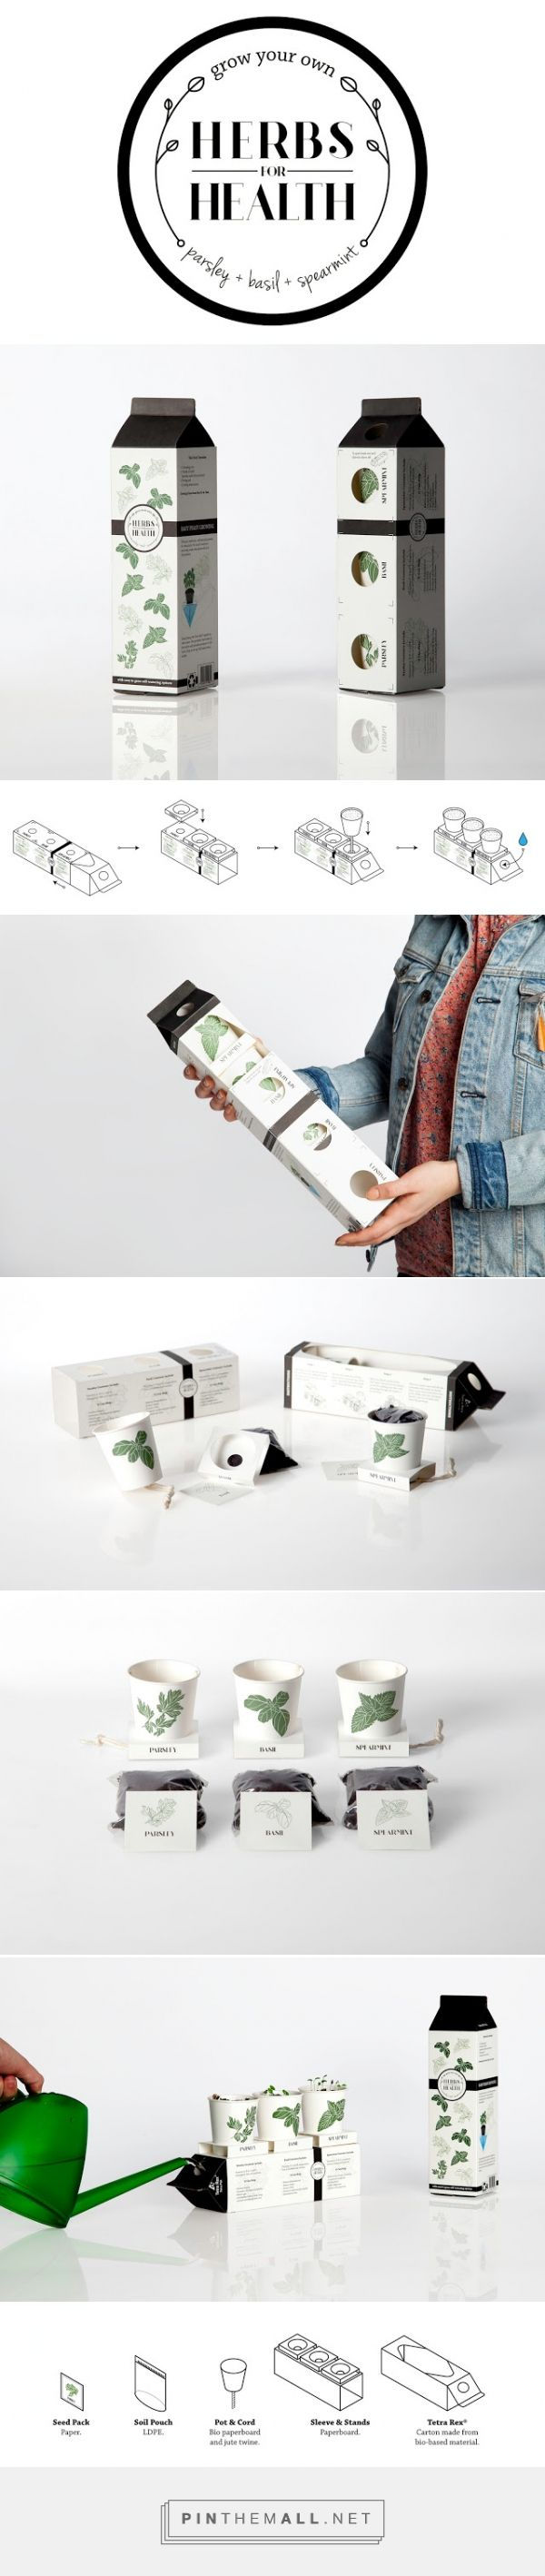 #Herbs for Health #student #concept #packaging designed by Duncan Anderson - http://www.packagingoftheworld.com/2015/06/herbs-for-health-student-project.html